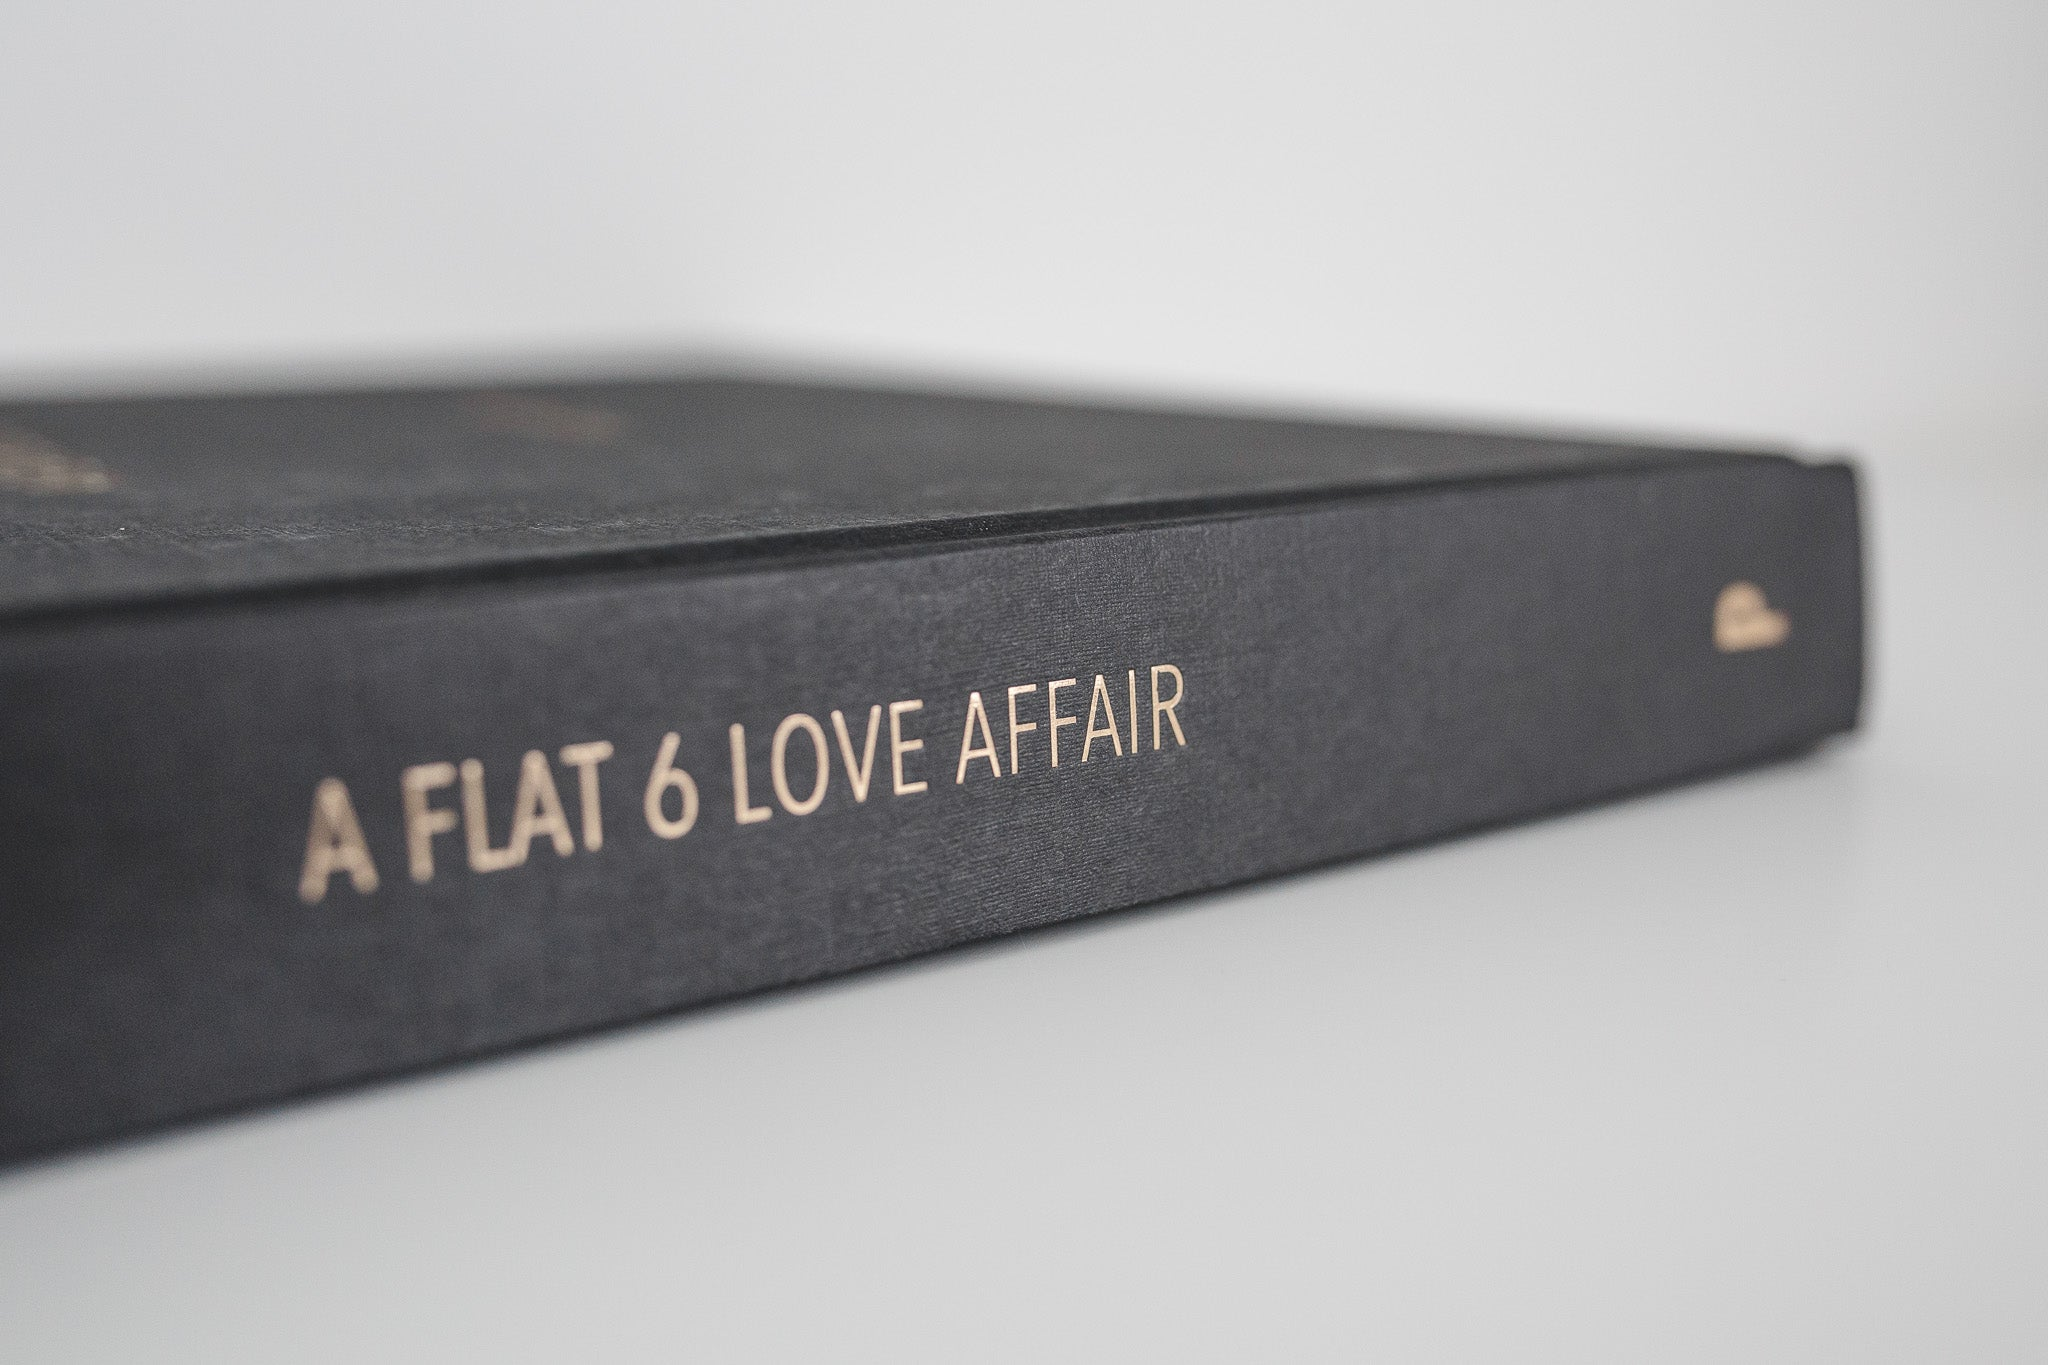 A Flat 6 Love Affair - VOL 7 (release date DEC 2021)